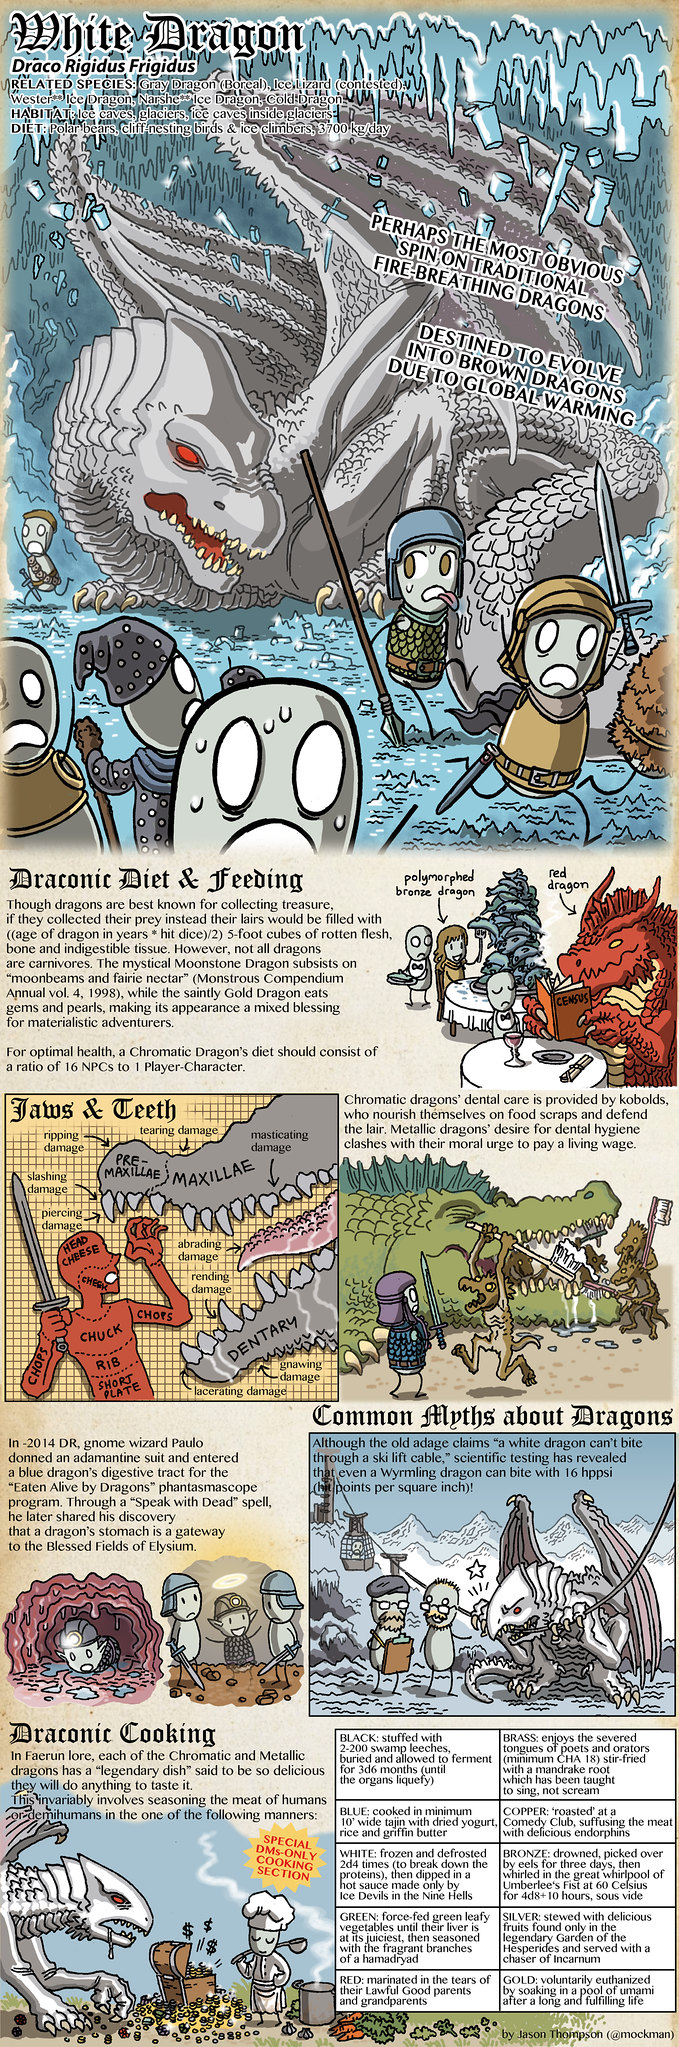 The Dragons of Dungeons & Dragons by Jason Thompson -White Dragon